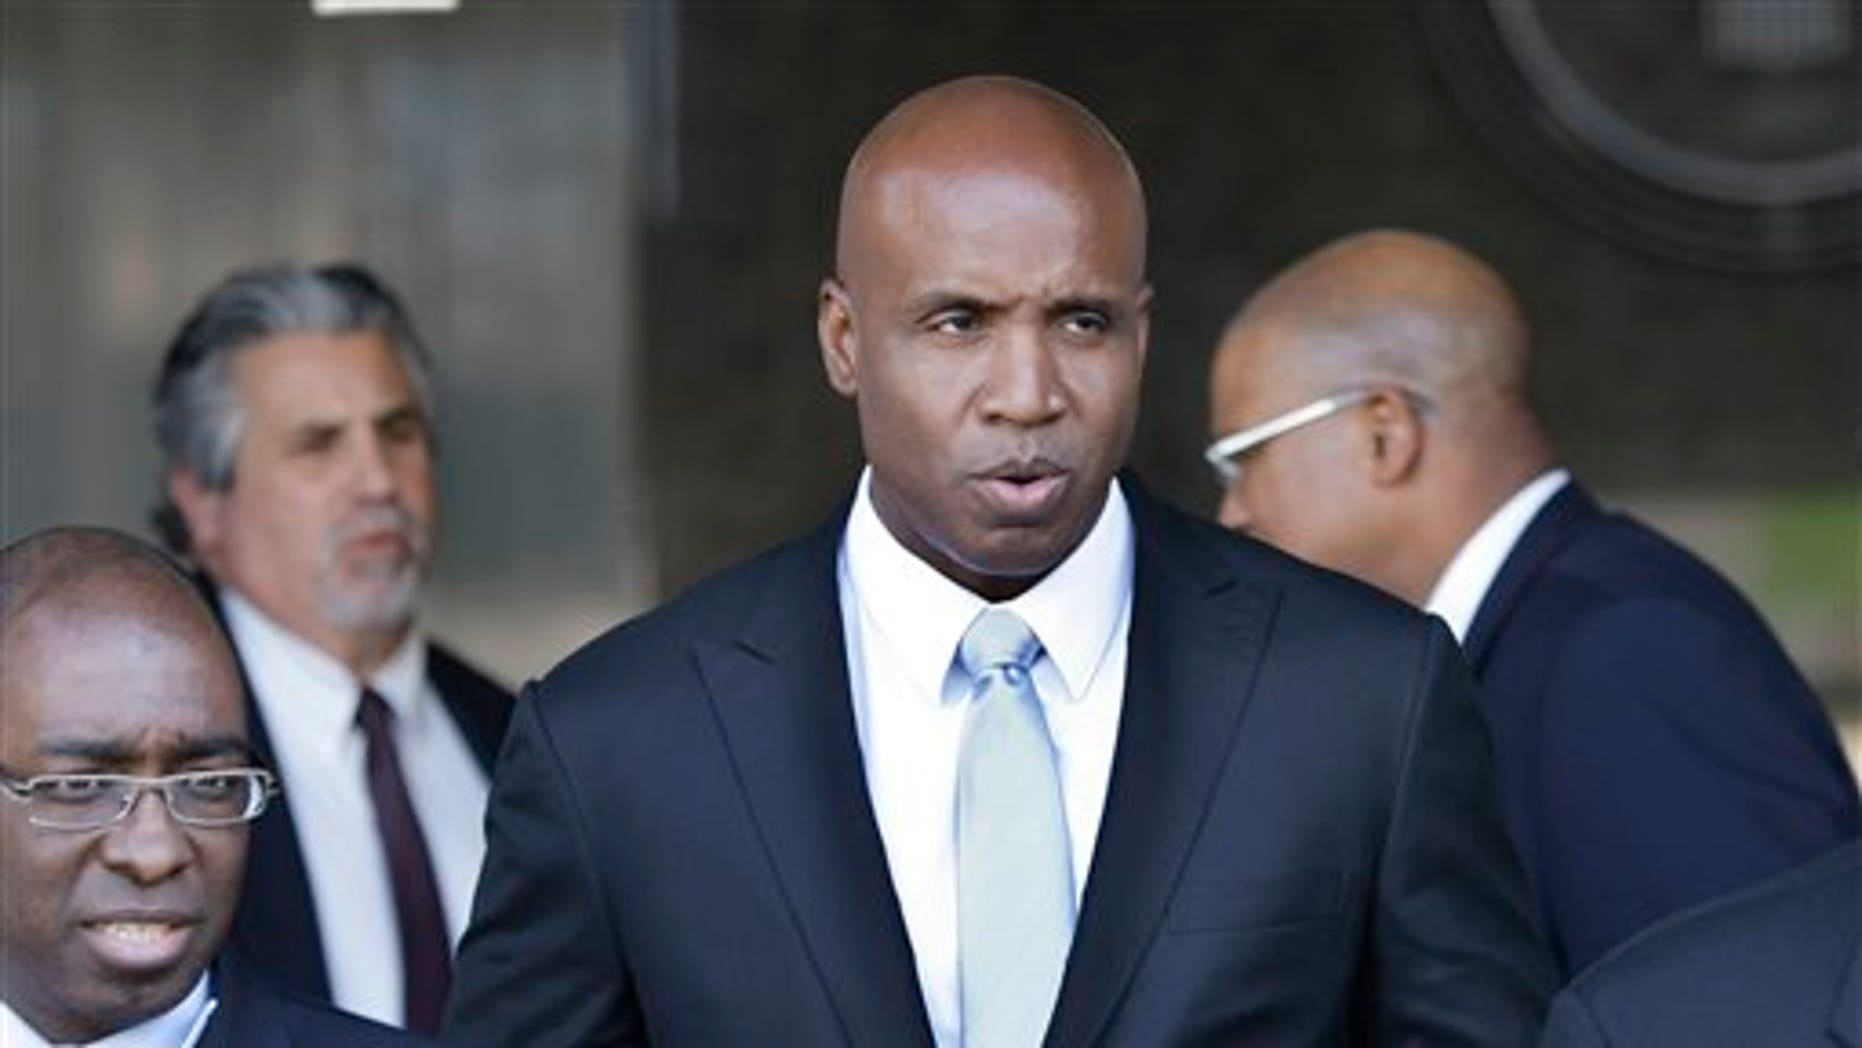 April 6: Barry Bonds leaves a federal courthouse for his trial in  San Francisco, CA. Bonds' confident defense team rested its case Wednesday without calling a single witness, just minutes after a federal judge accepted the government's request to dismiss one of the five counts against him.